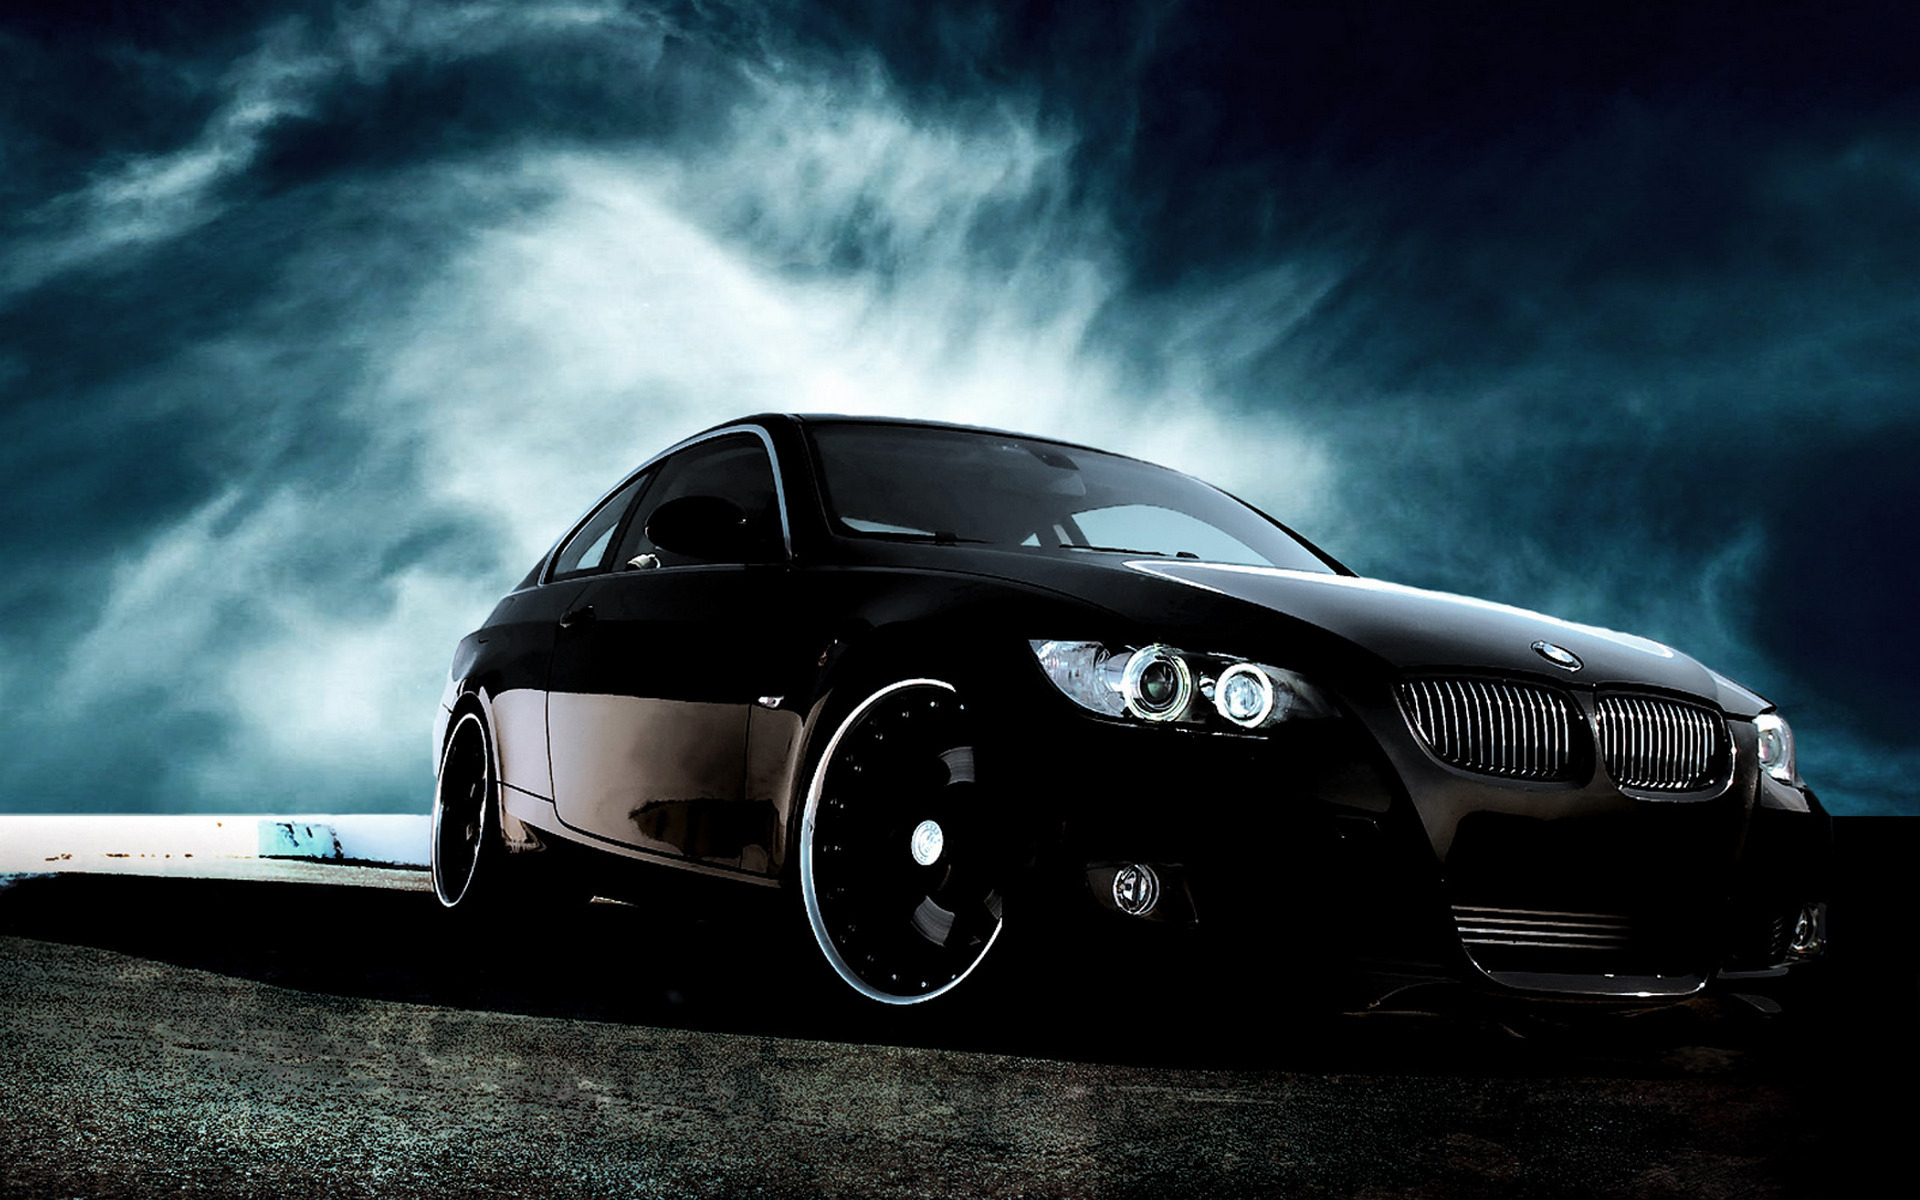 Black Bmw Wallpaper Background Hdblackwallpaper Black Background Hd High Quality 1920x1200 Wallpaper Teahub Io